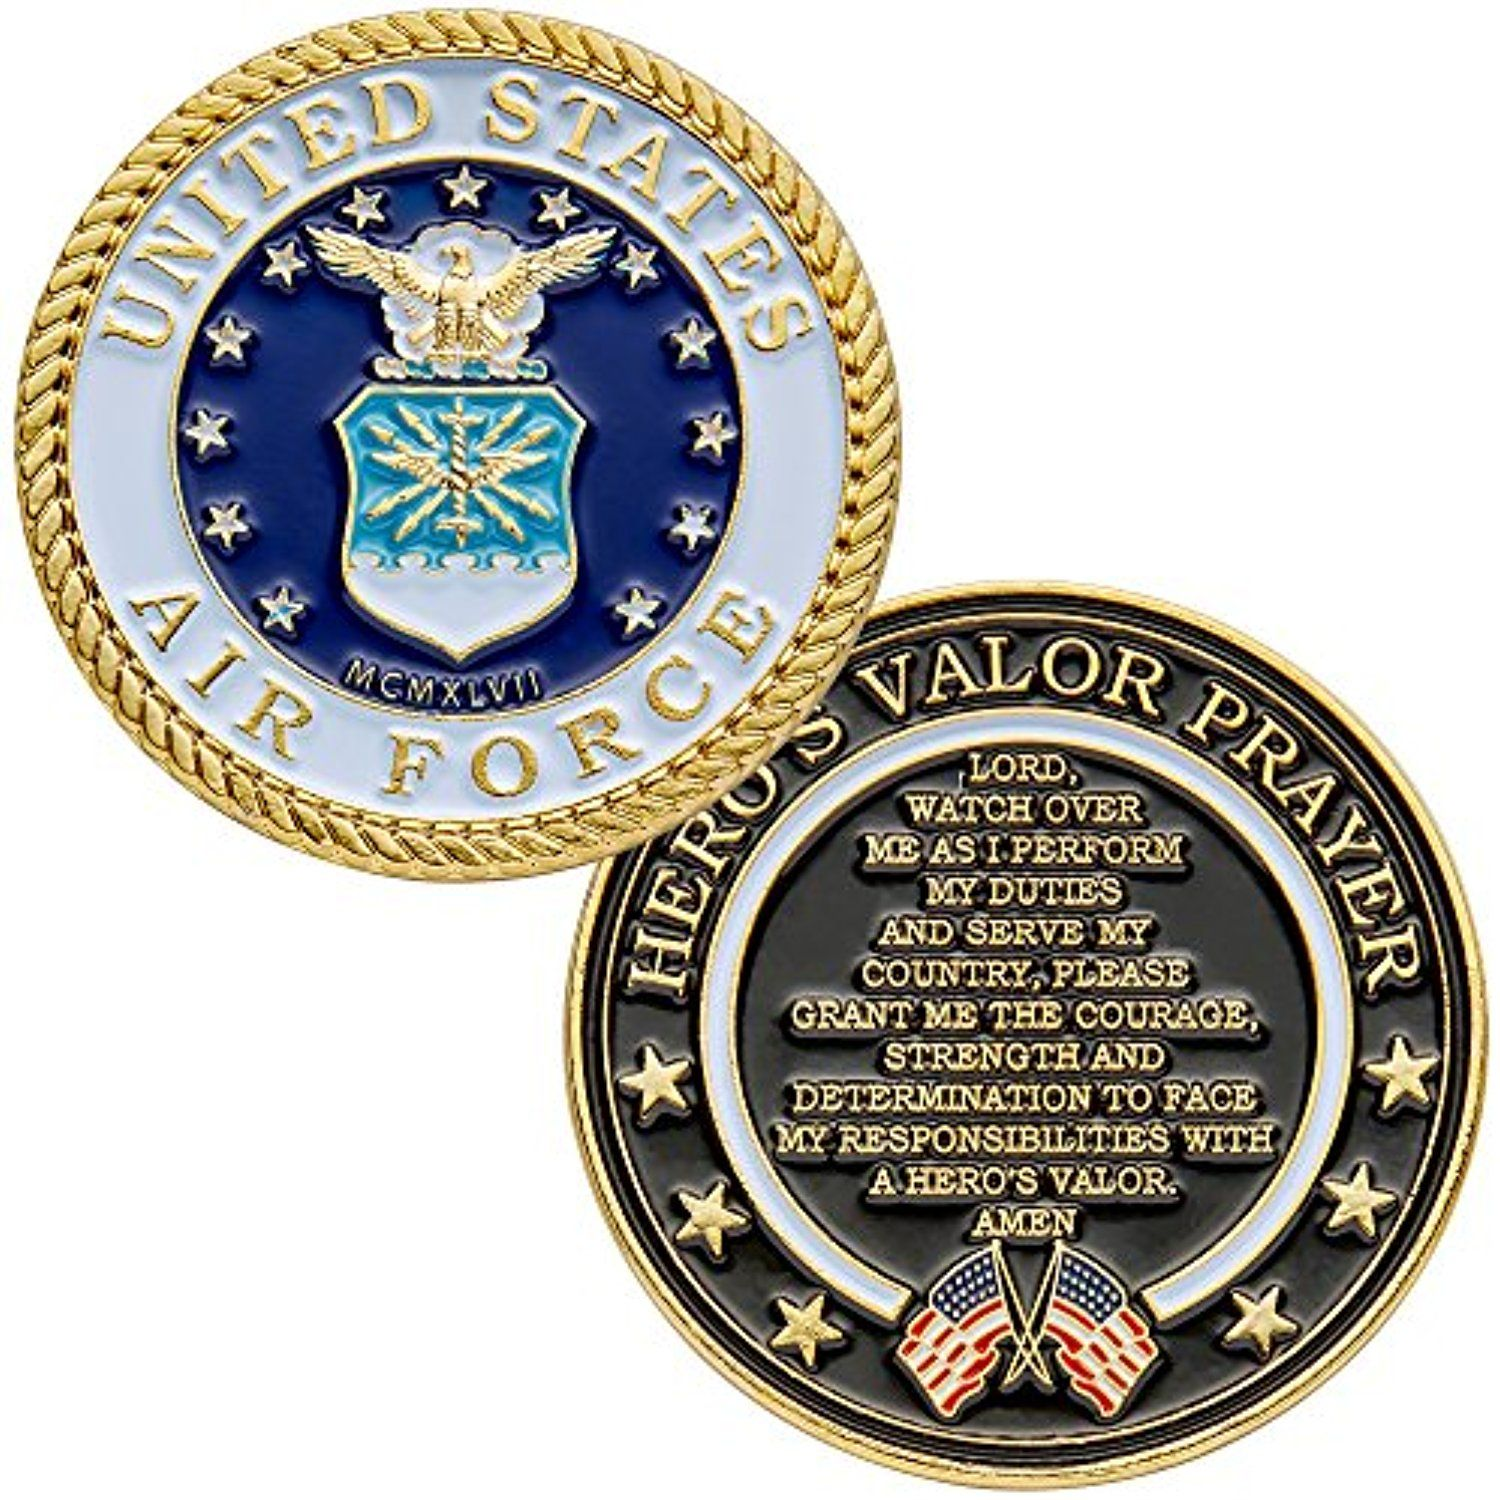 United States Air Force Challenge Coin with Hero's Valor